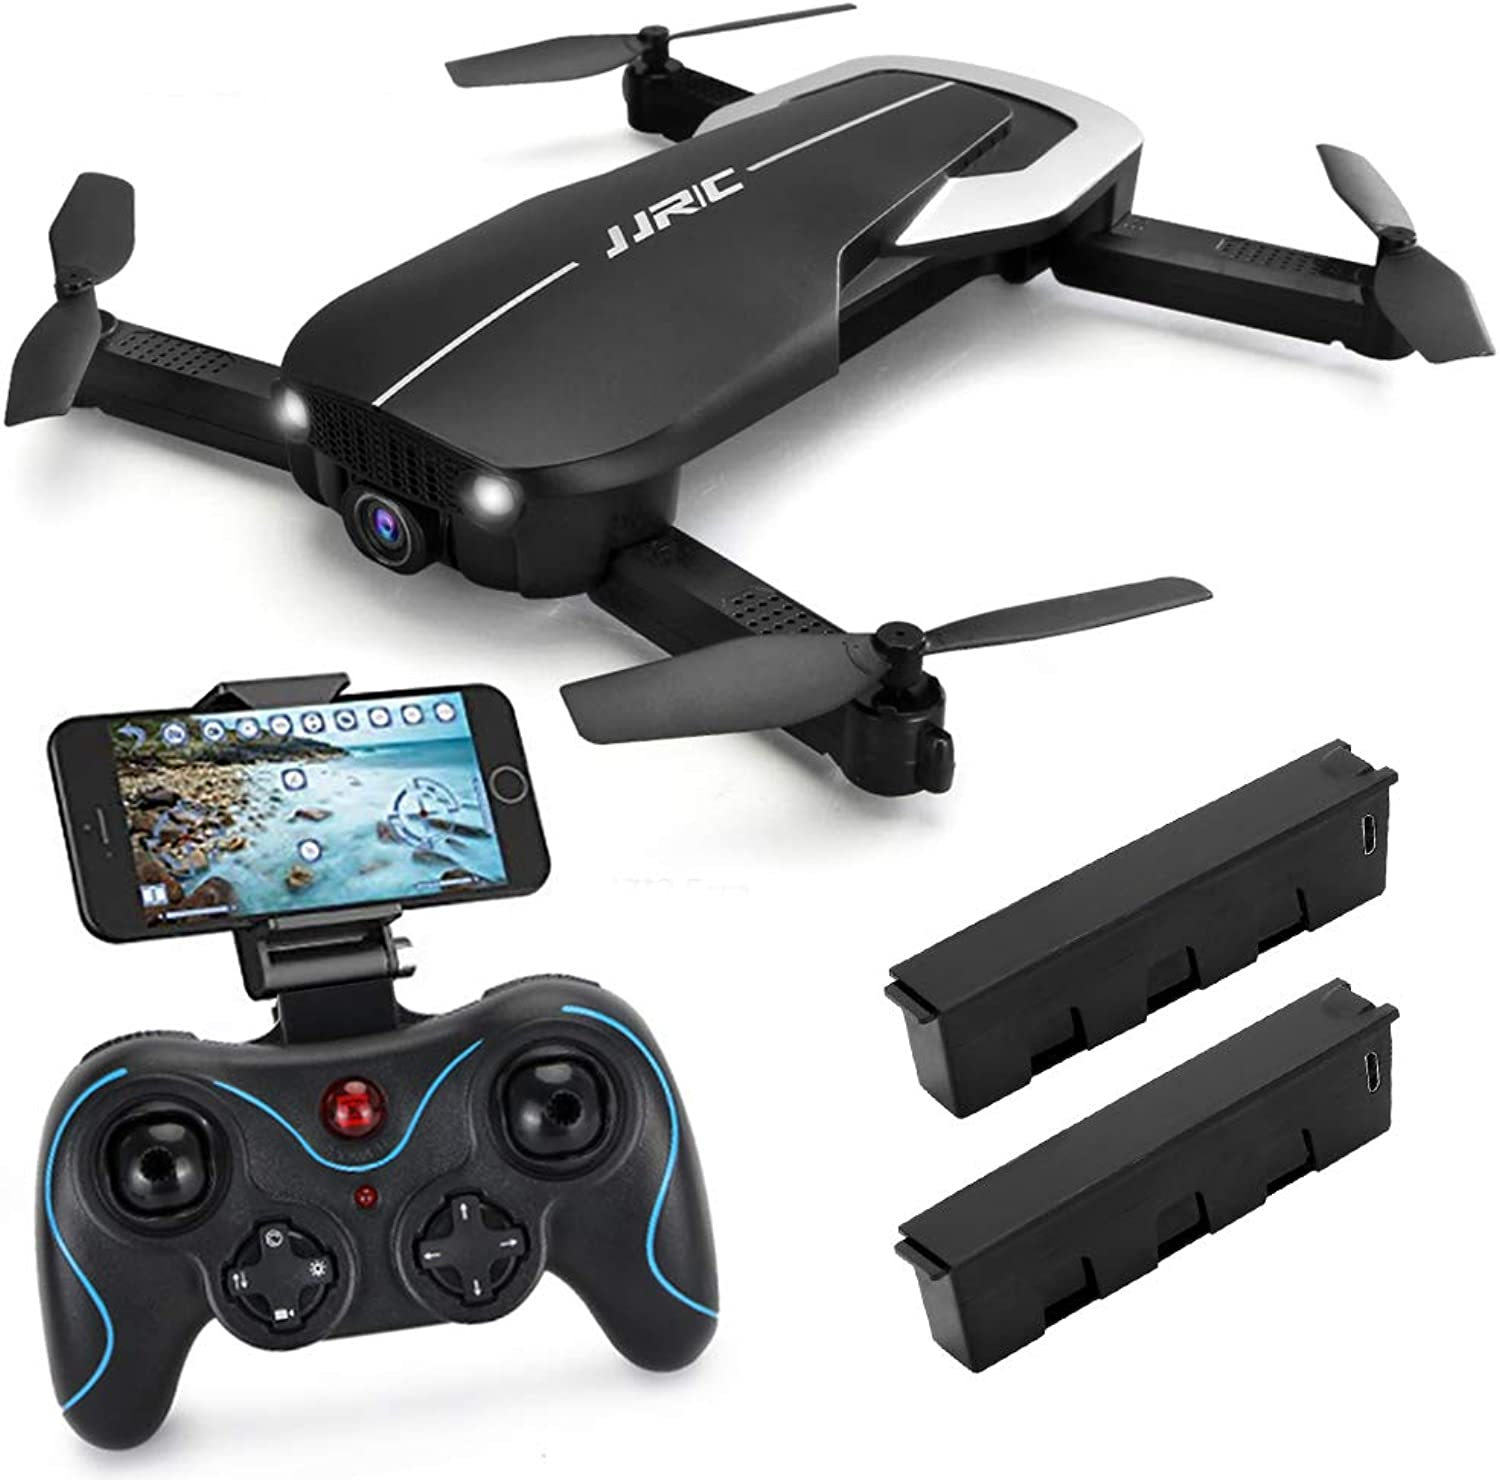 JJRC H71 FPV Drone with 1080p HD WiFi Camera Live Video Feed 2.4GHz 6Axis Gyro RC Quadcopter for Kids & Beginners, Optical Flow Position Altitude Hold, One Key Start, Foldable Arms, Black